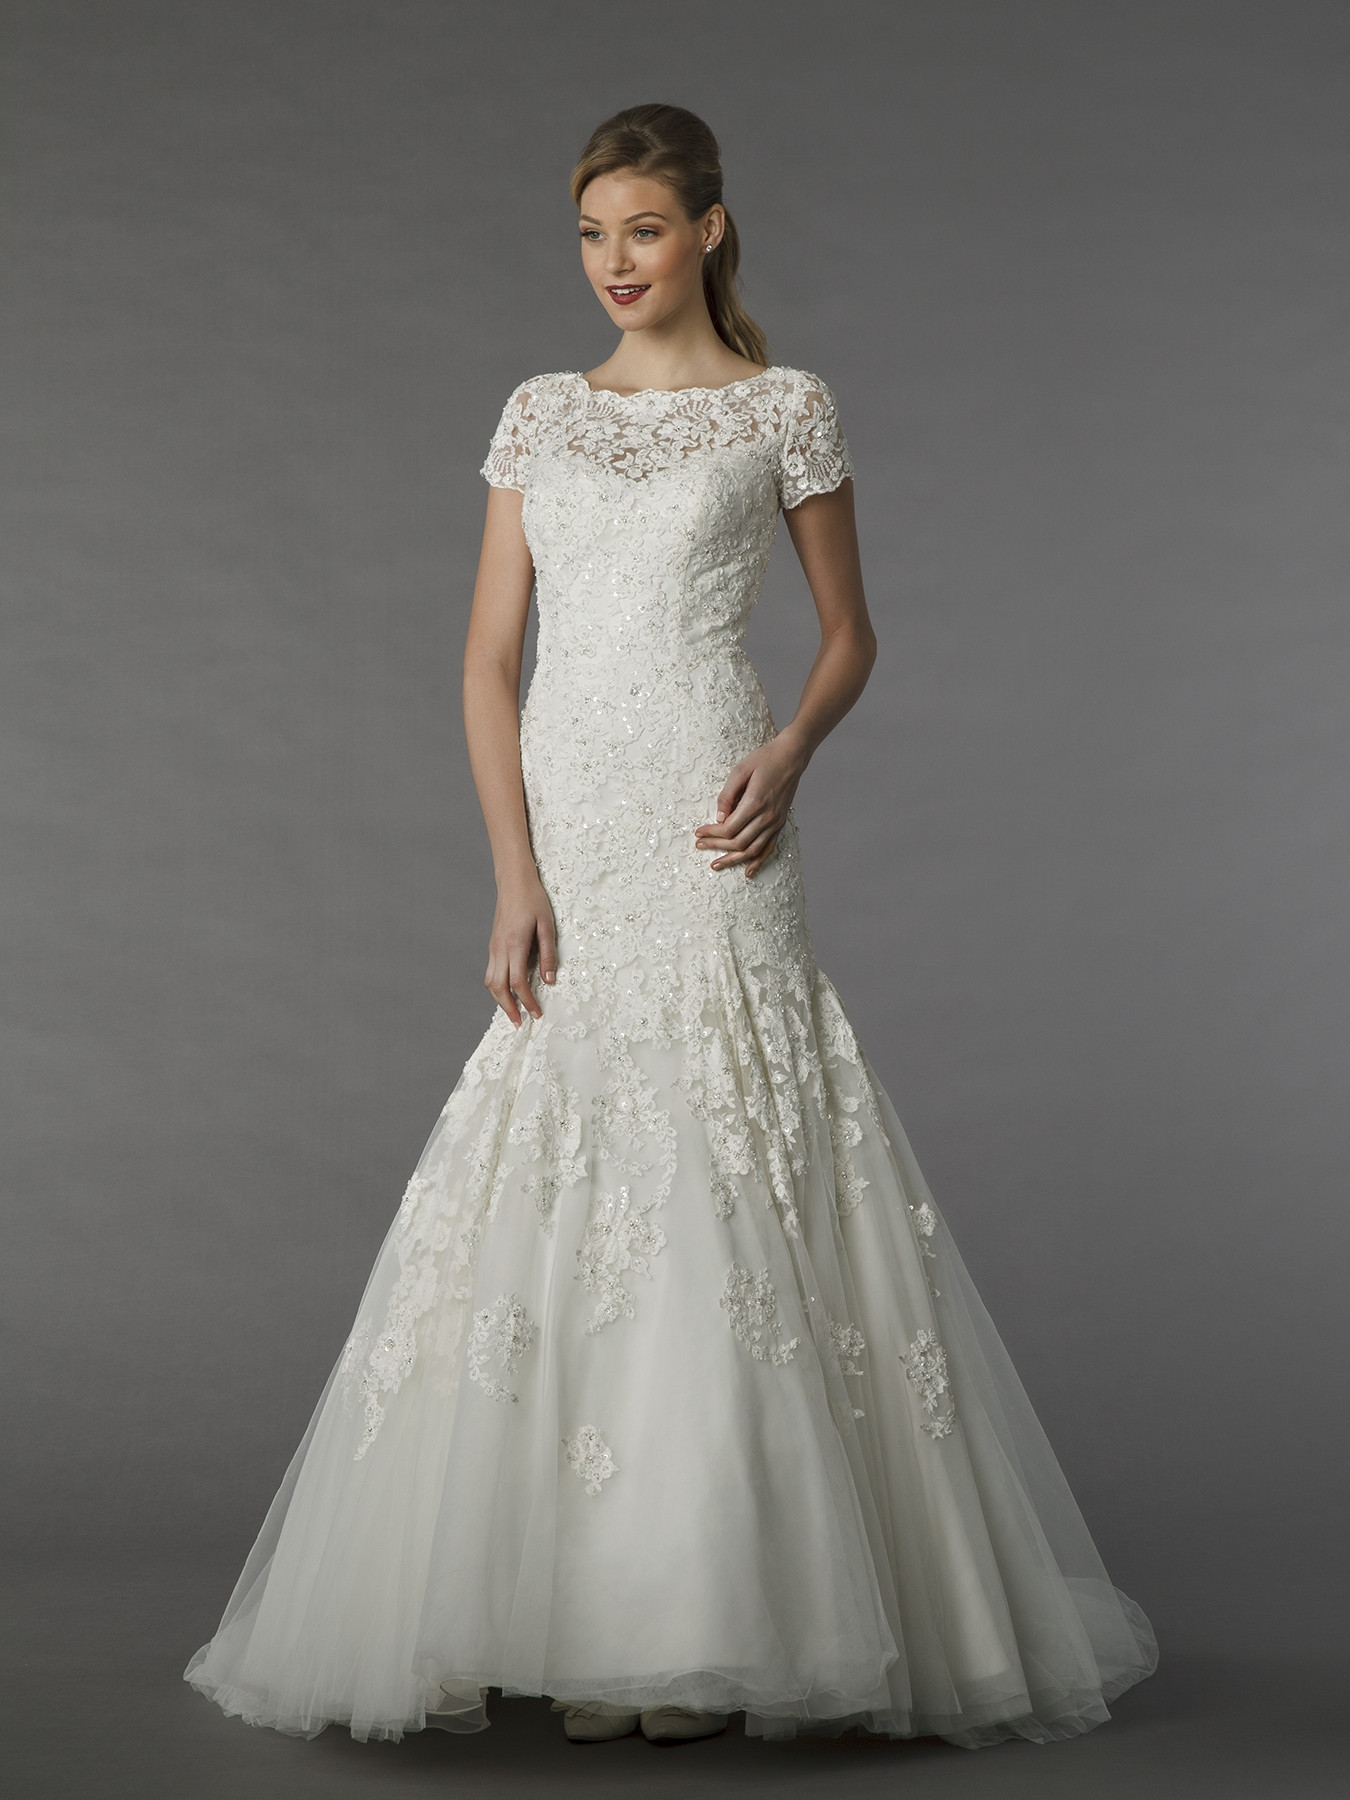 Mz2 74557 f 150dpi mermaid wedding dress by mark zunino for Wedding dresses under 150 dollars